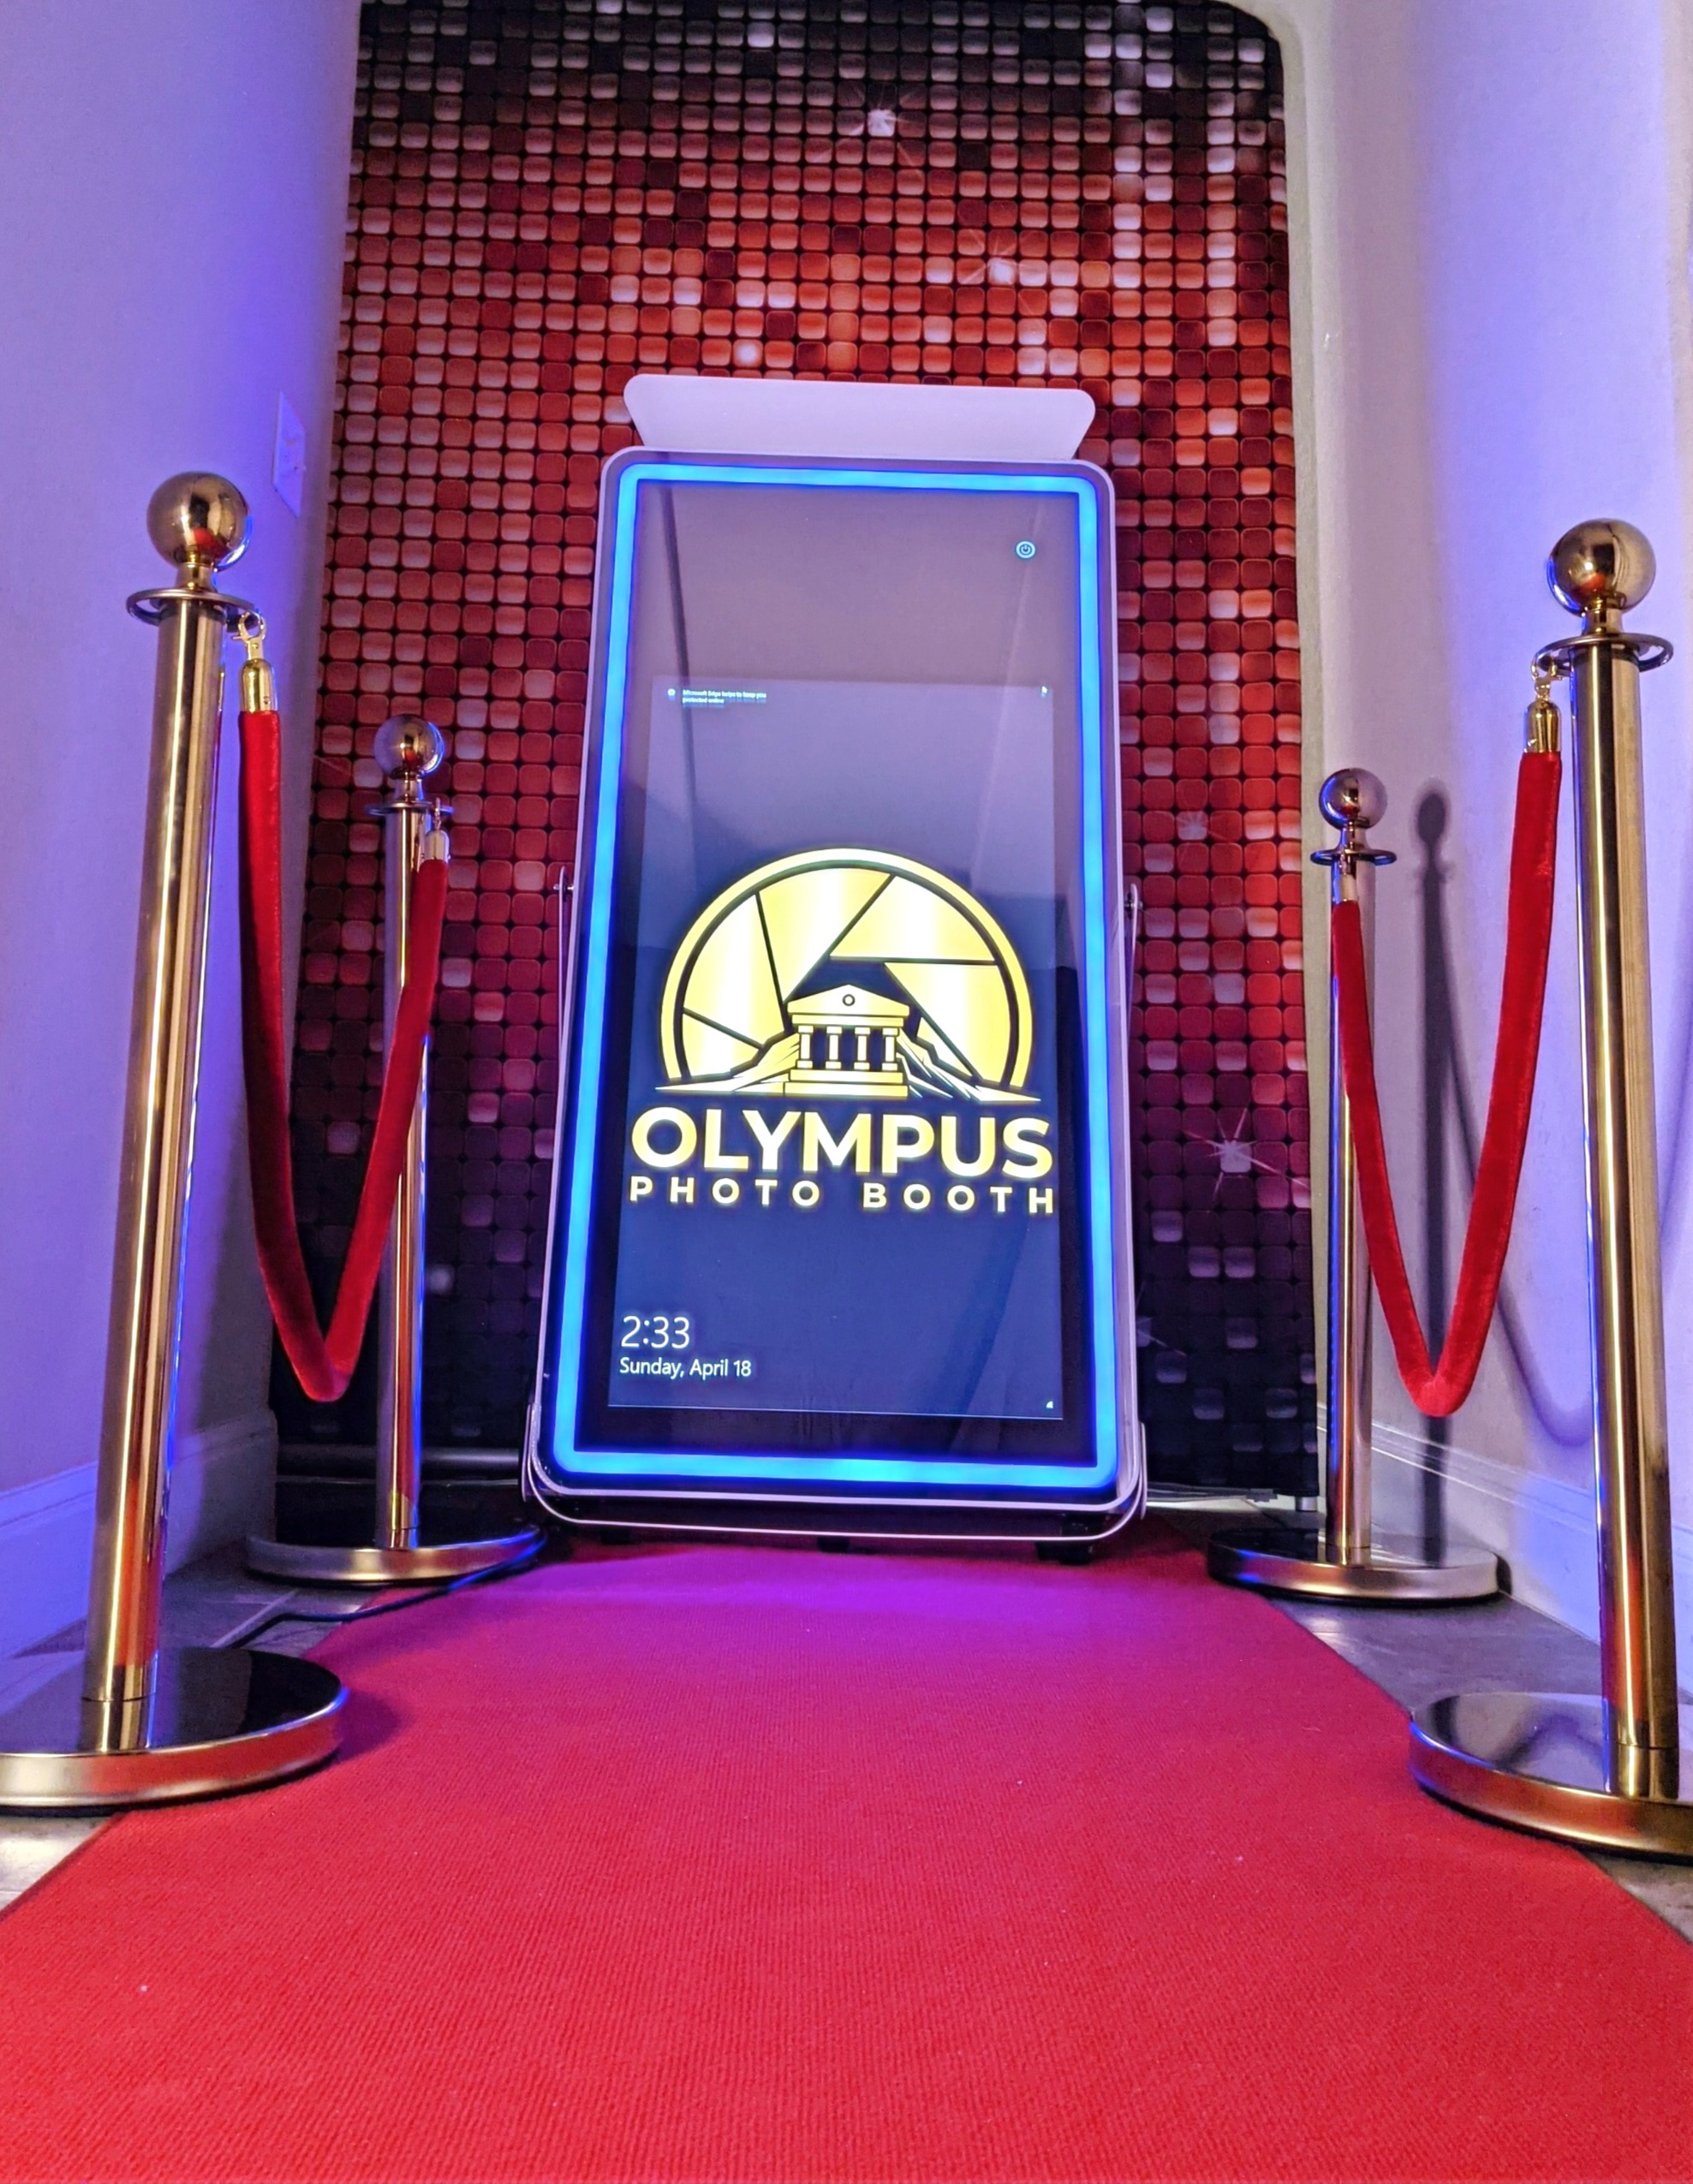 Red carpet with stanchions and mirrored photo booth